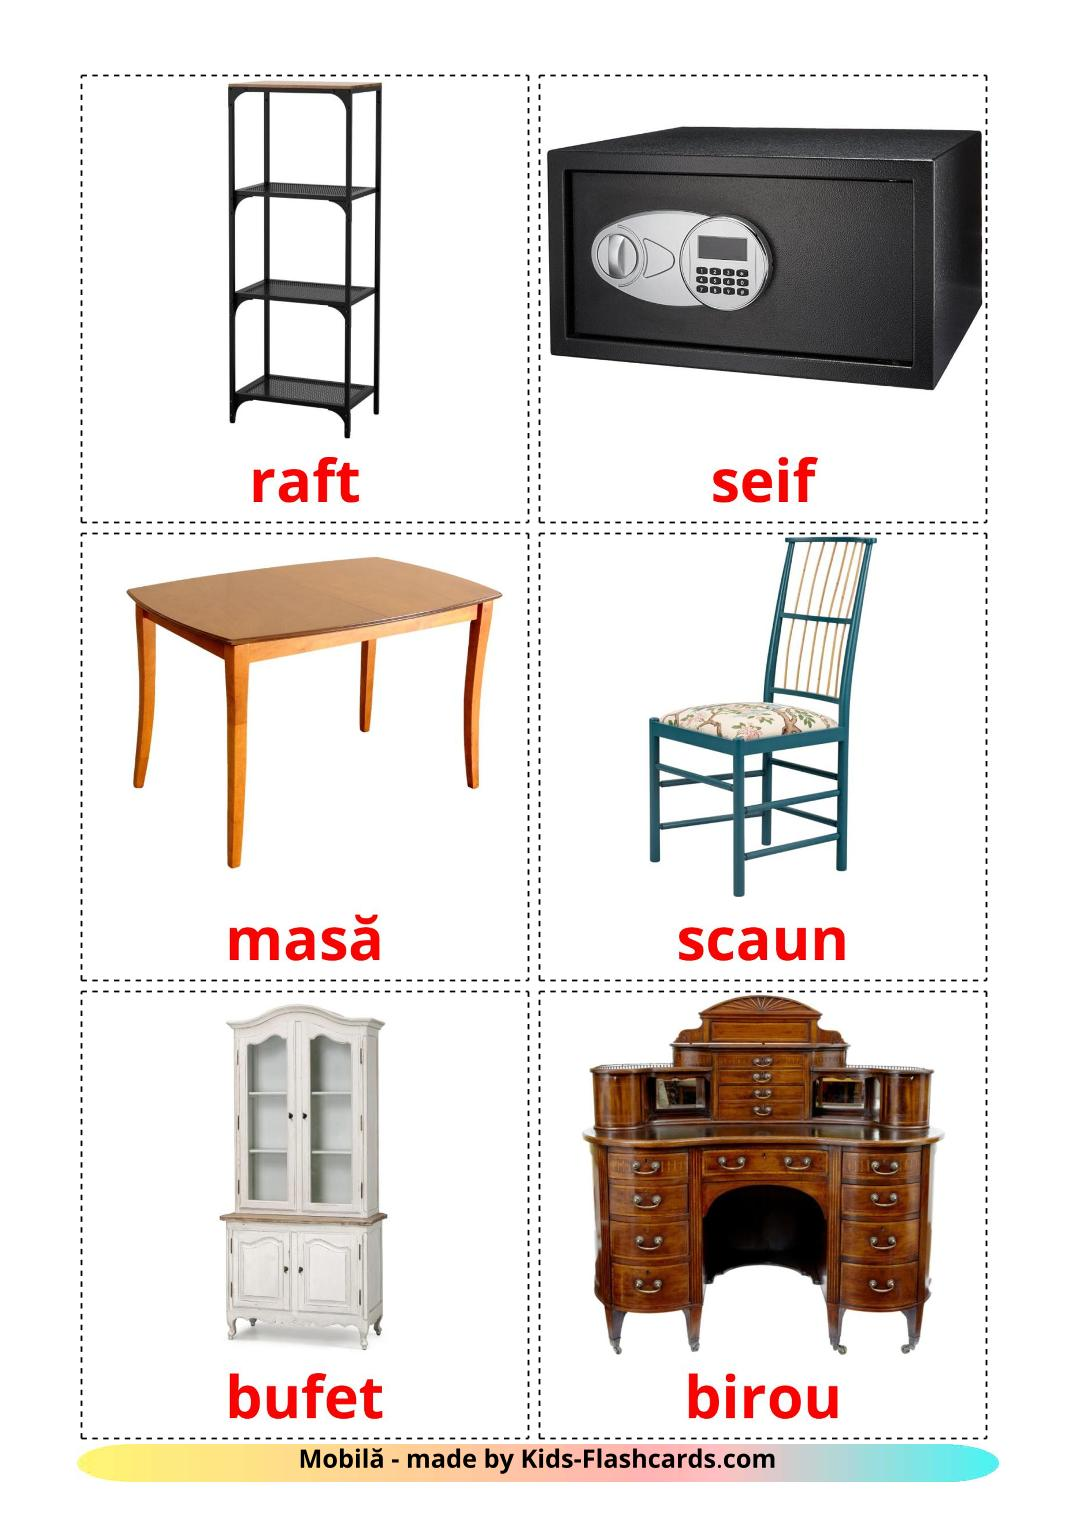 Furniture - 31 Free Printable romanian Flashcards